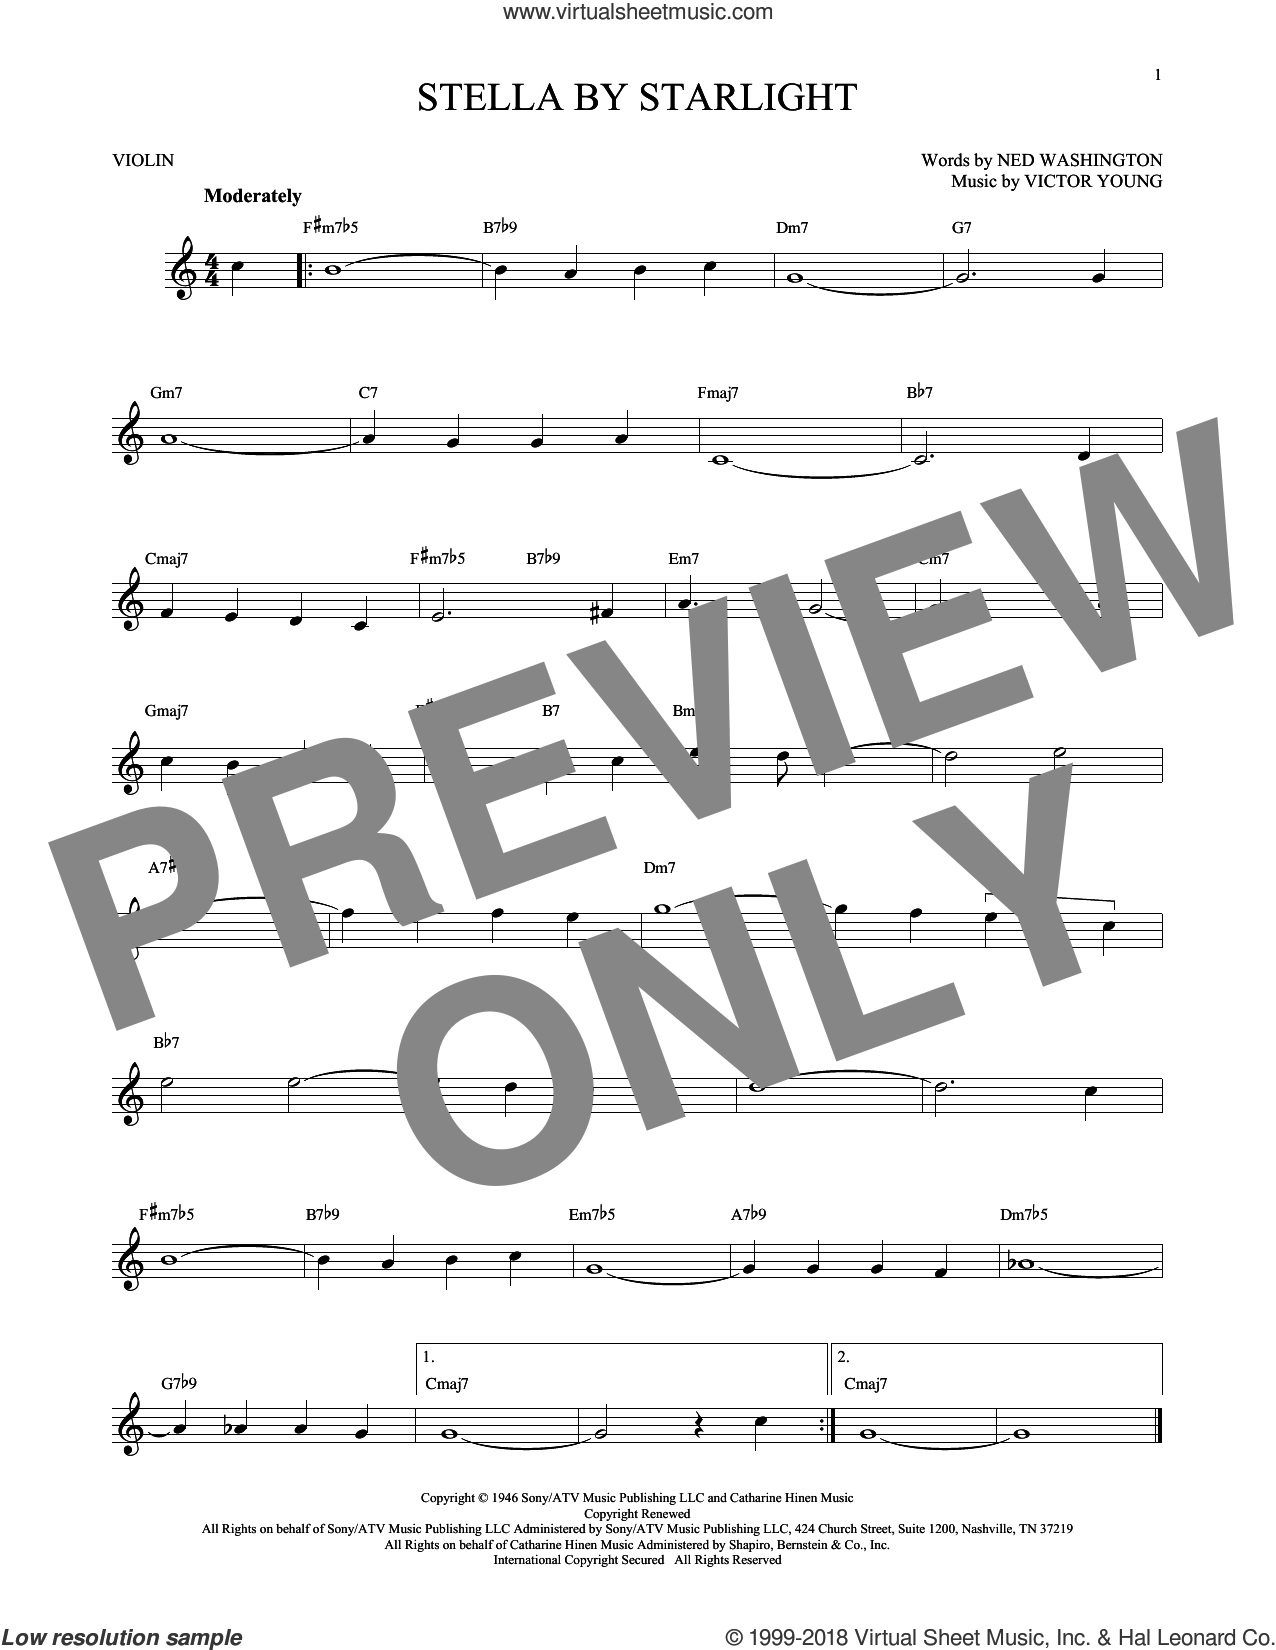 Stella By Starlight sheet music for violin solo by Ned Washington, Ray Charles and Victor Young, intermediate skill level